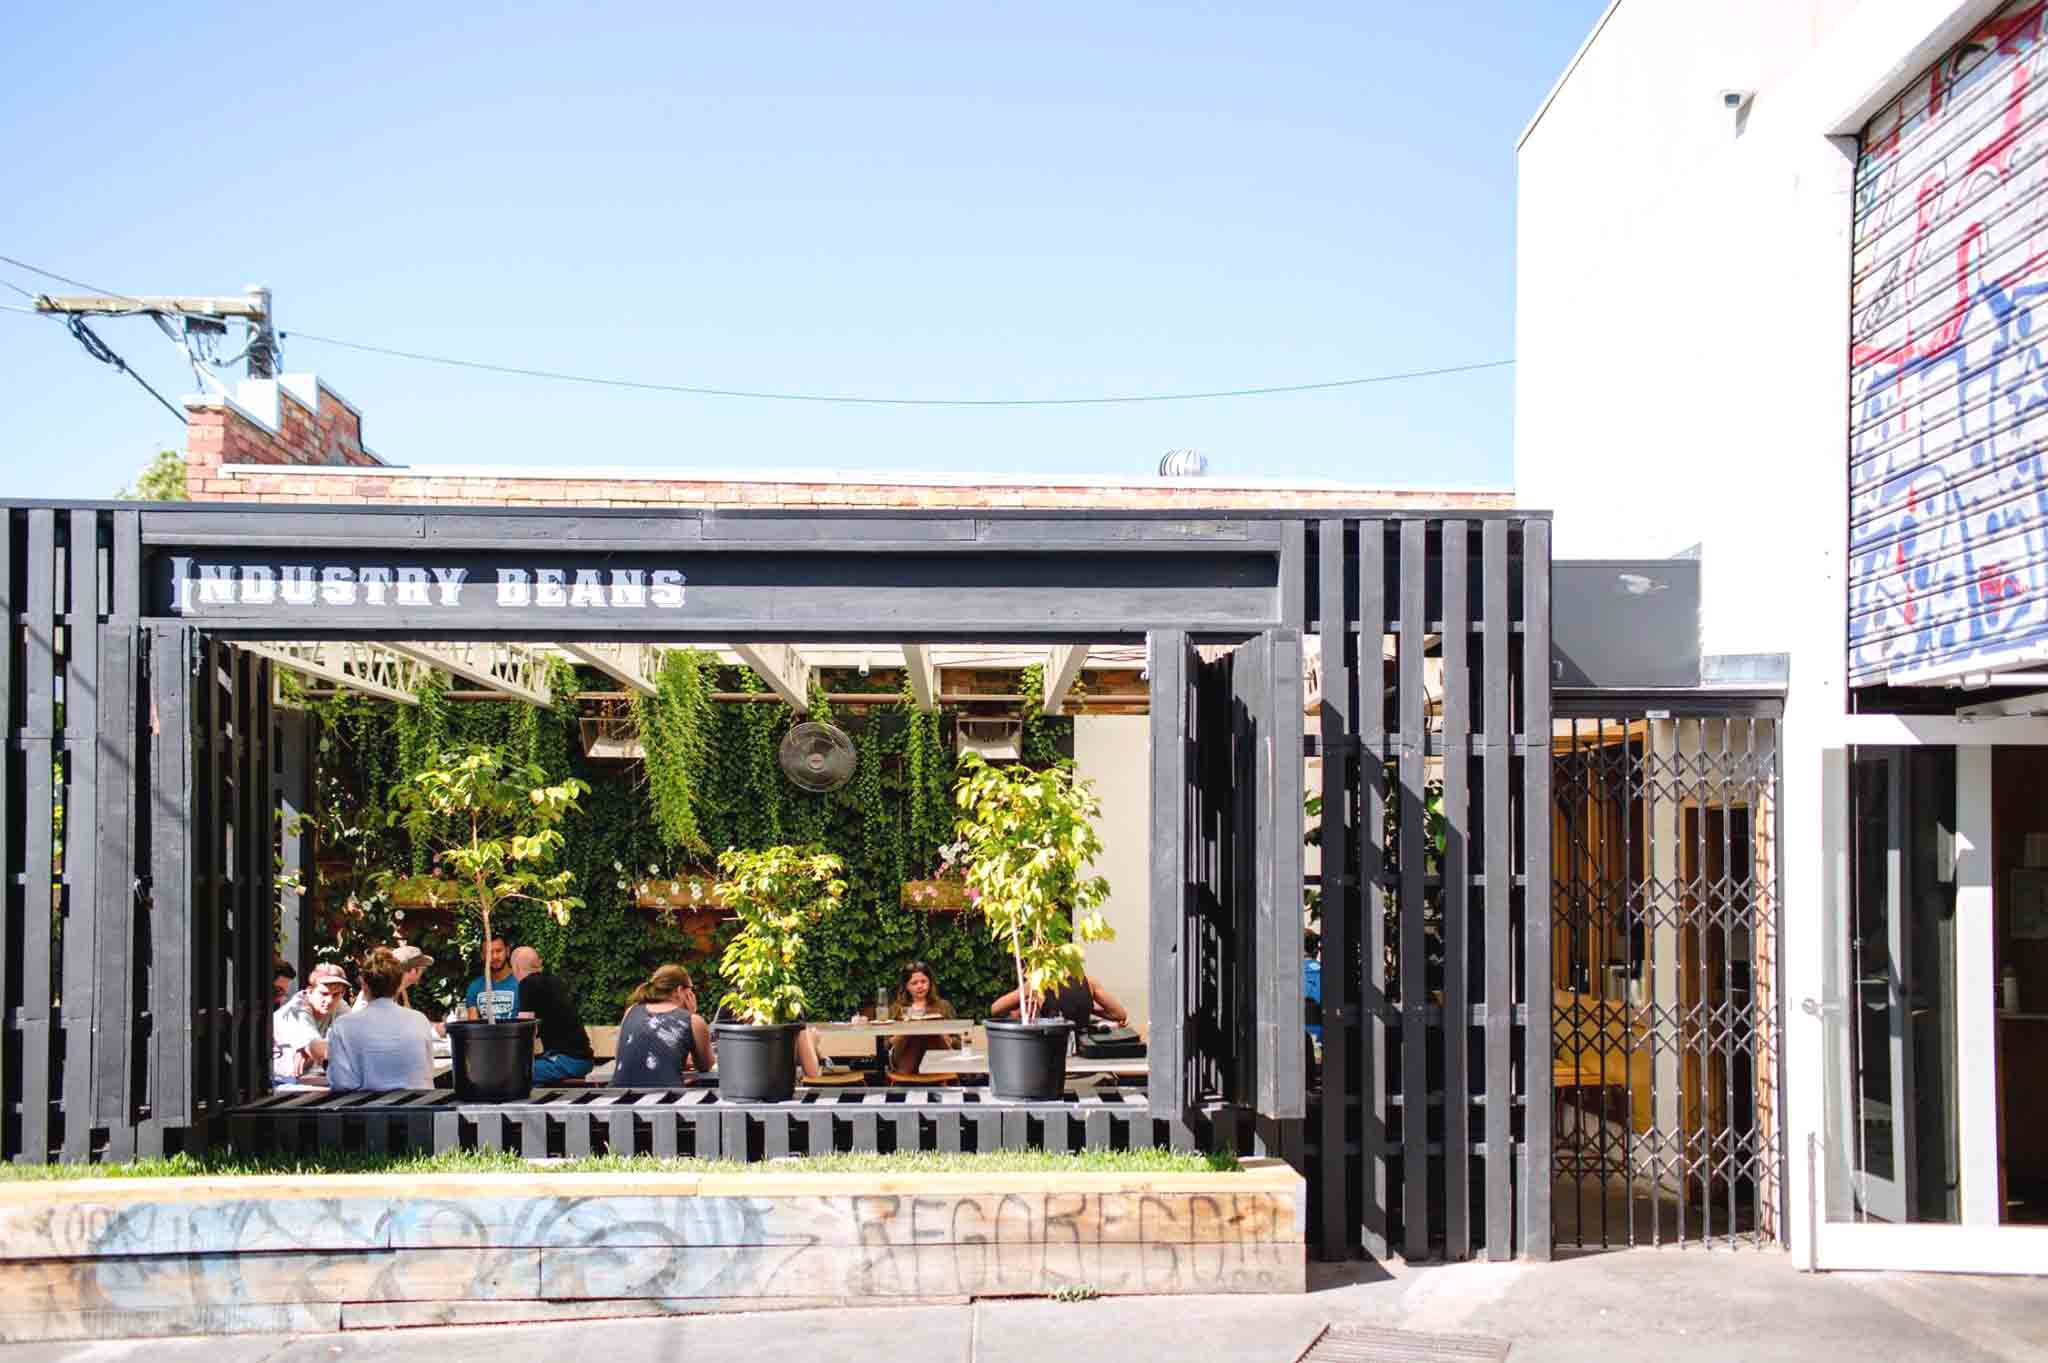 Industry Beans – Best Brunch Cafes